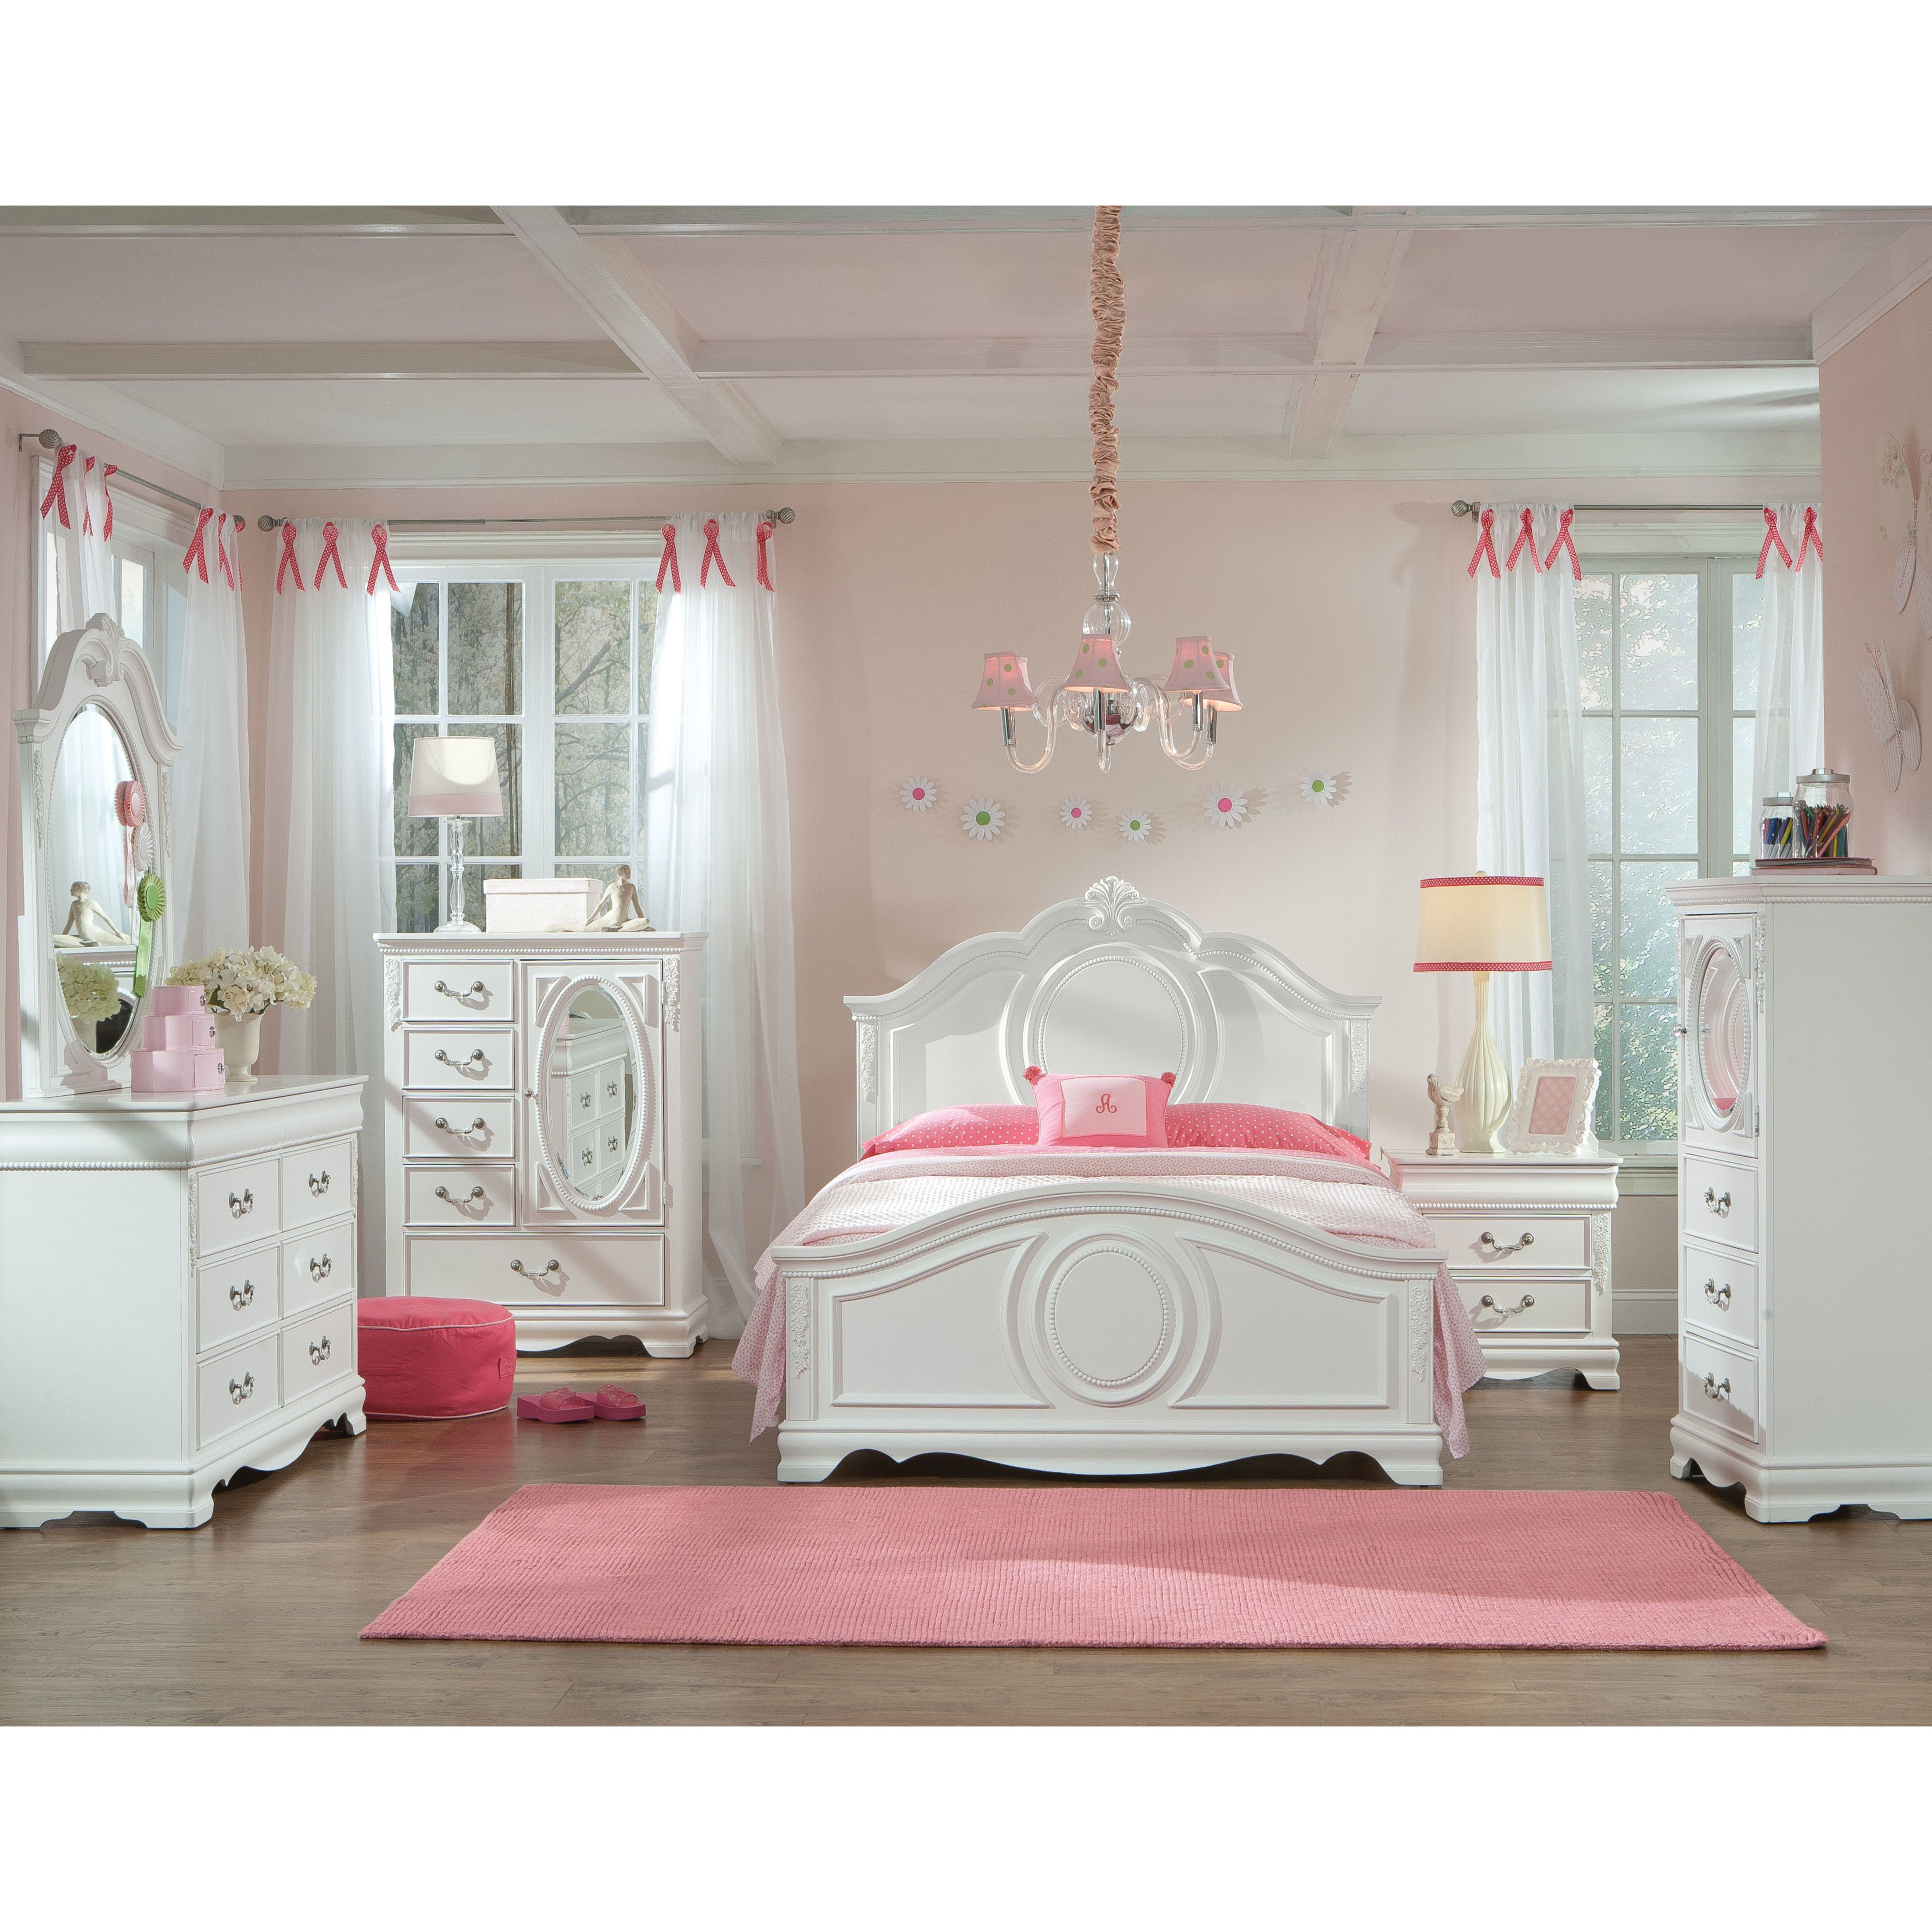 Incredible Brilliant Full Bedroom Sets For Girls Learning ...